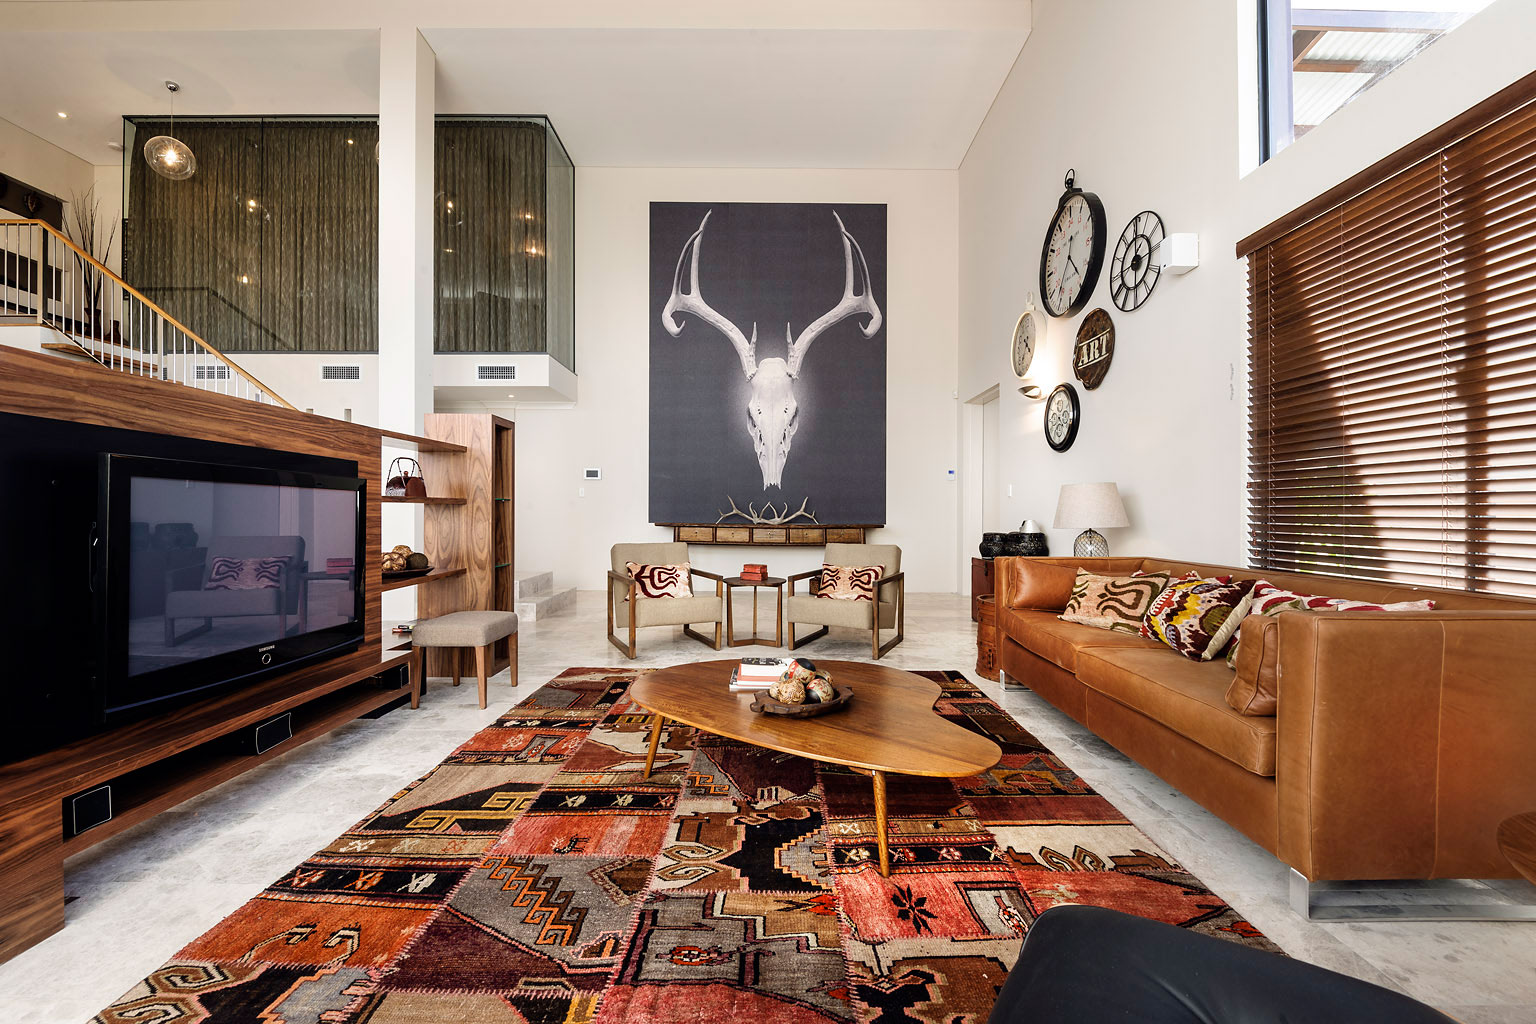 The bletchley loft by the rural building company homedezen for Loft home designs perth